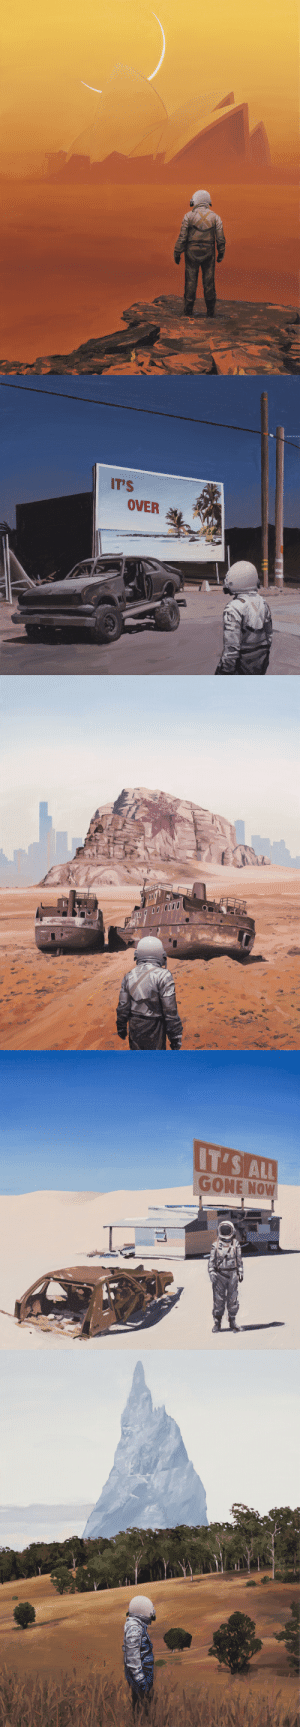 nevver:Fury Road, Scott Listfield (because): IT'S  OVER   IT'S ALL  GONE NOW nevver:Fury Road, Scott Listfield (because)